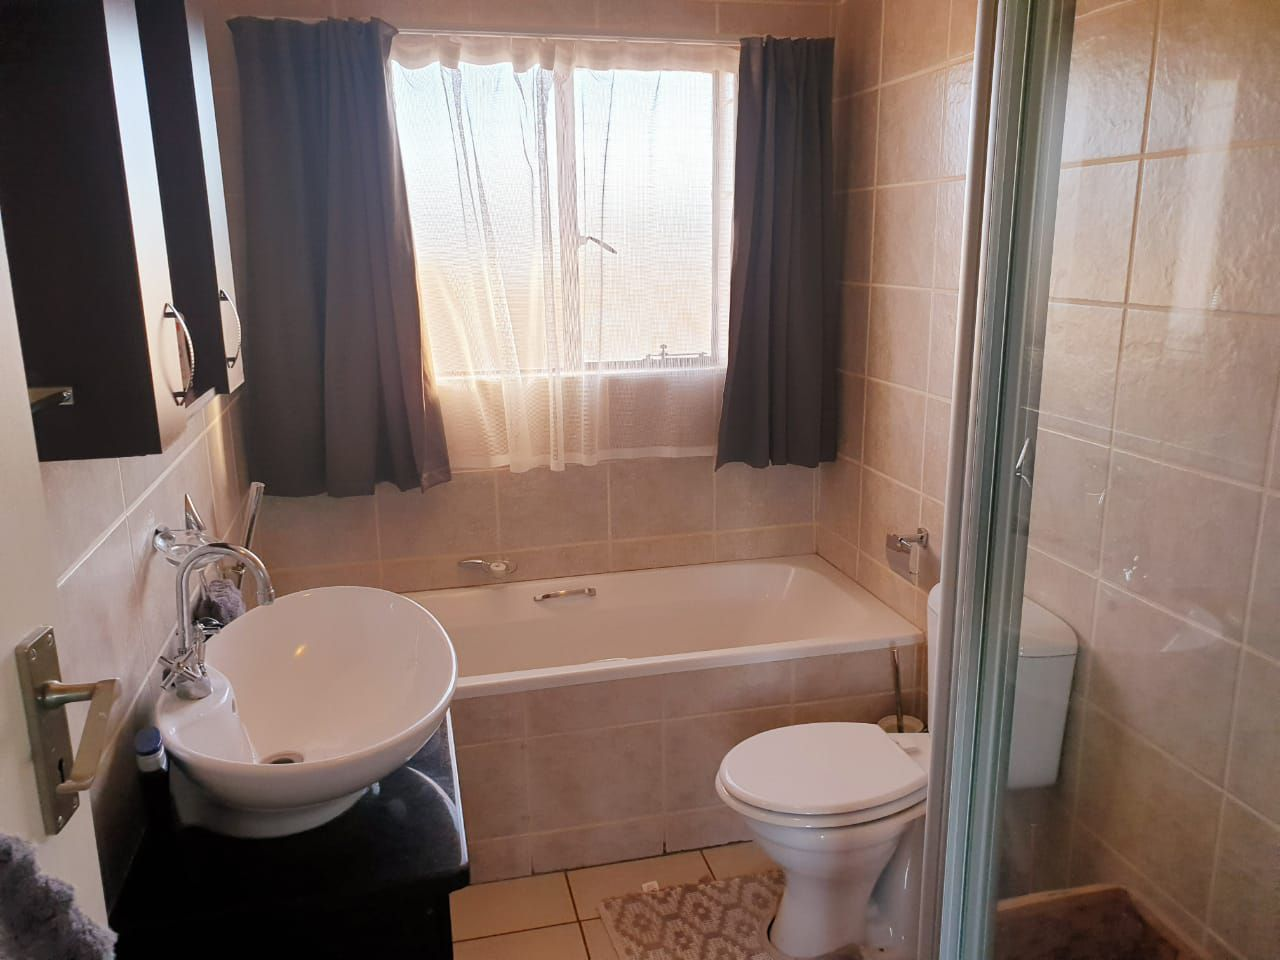 Apartment in Bailliepark - WhatsApp Image 2019-06-13 at 16.59.35 (1).jpeg